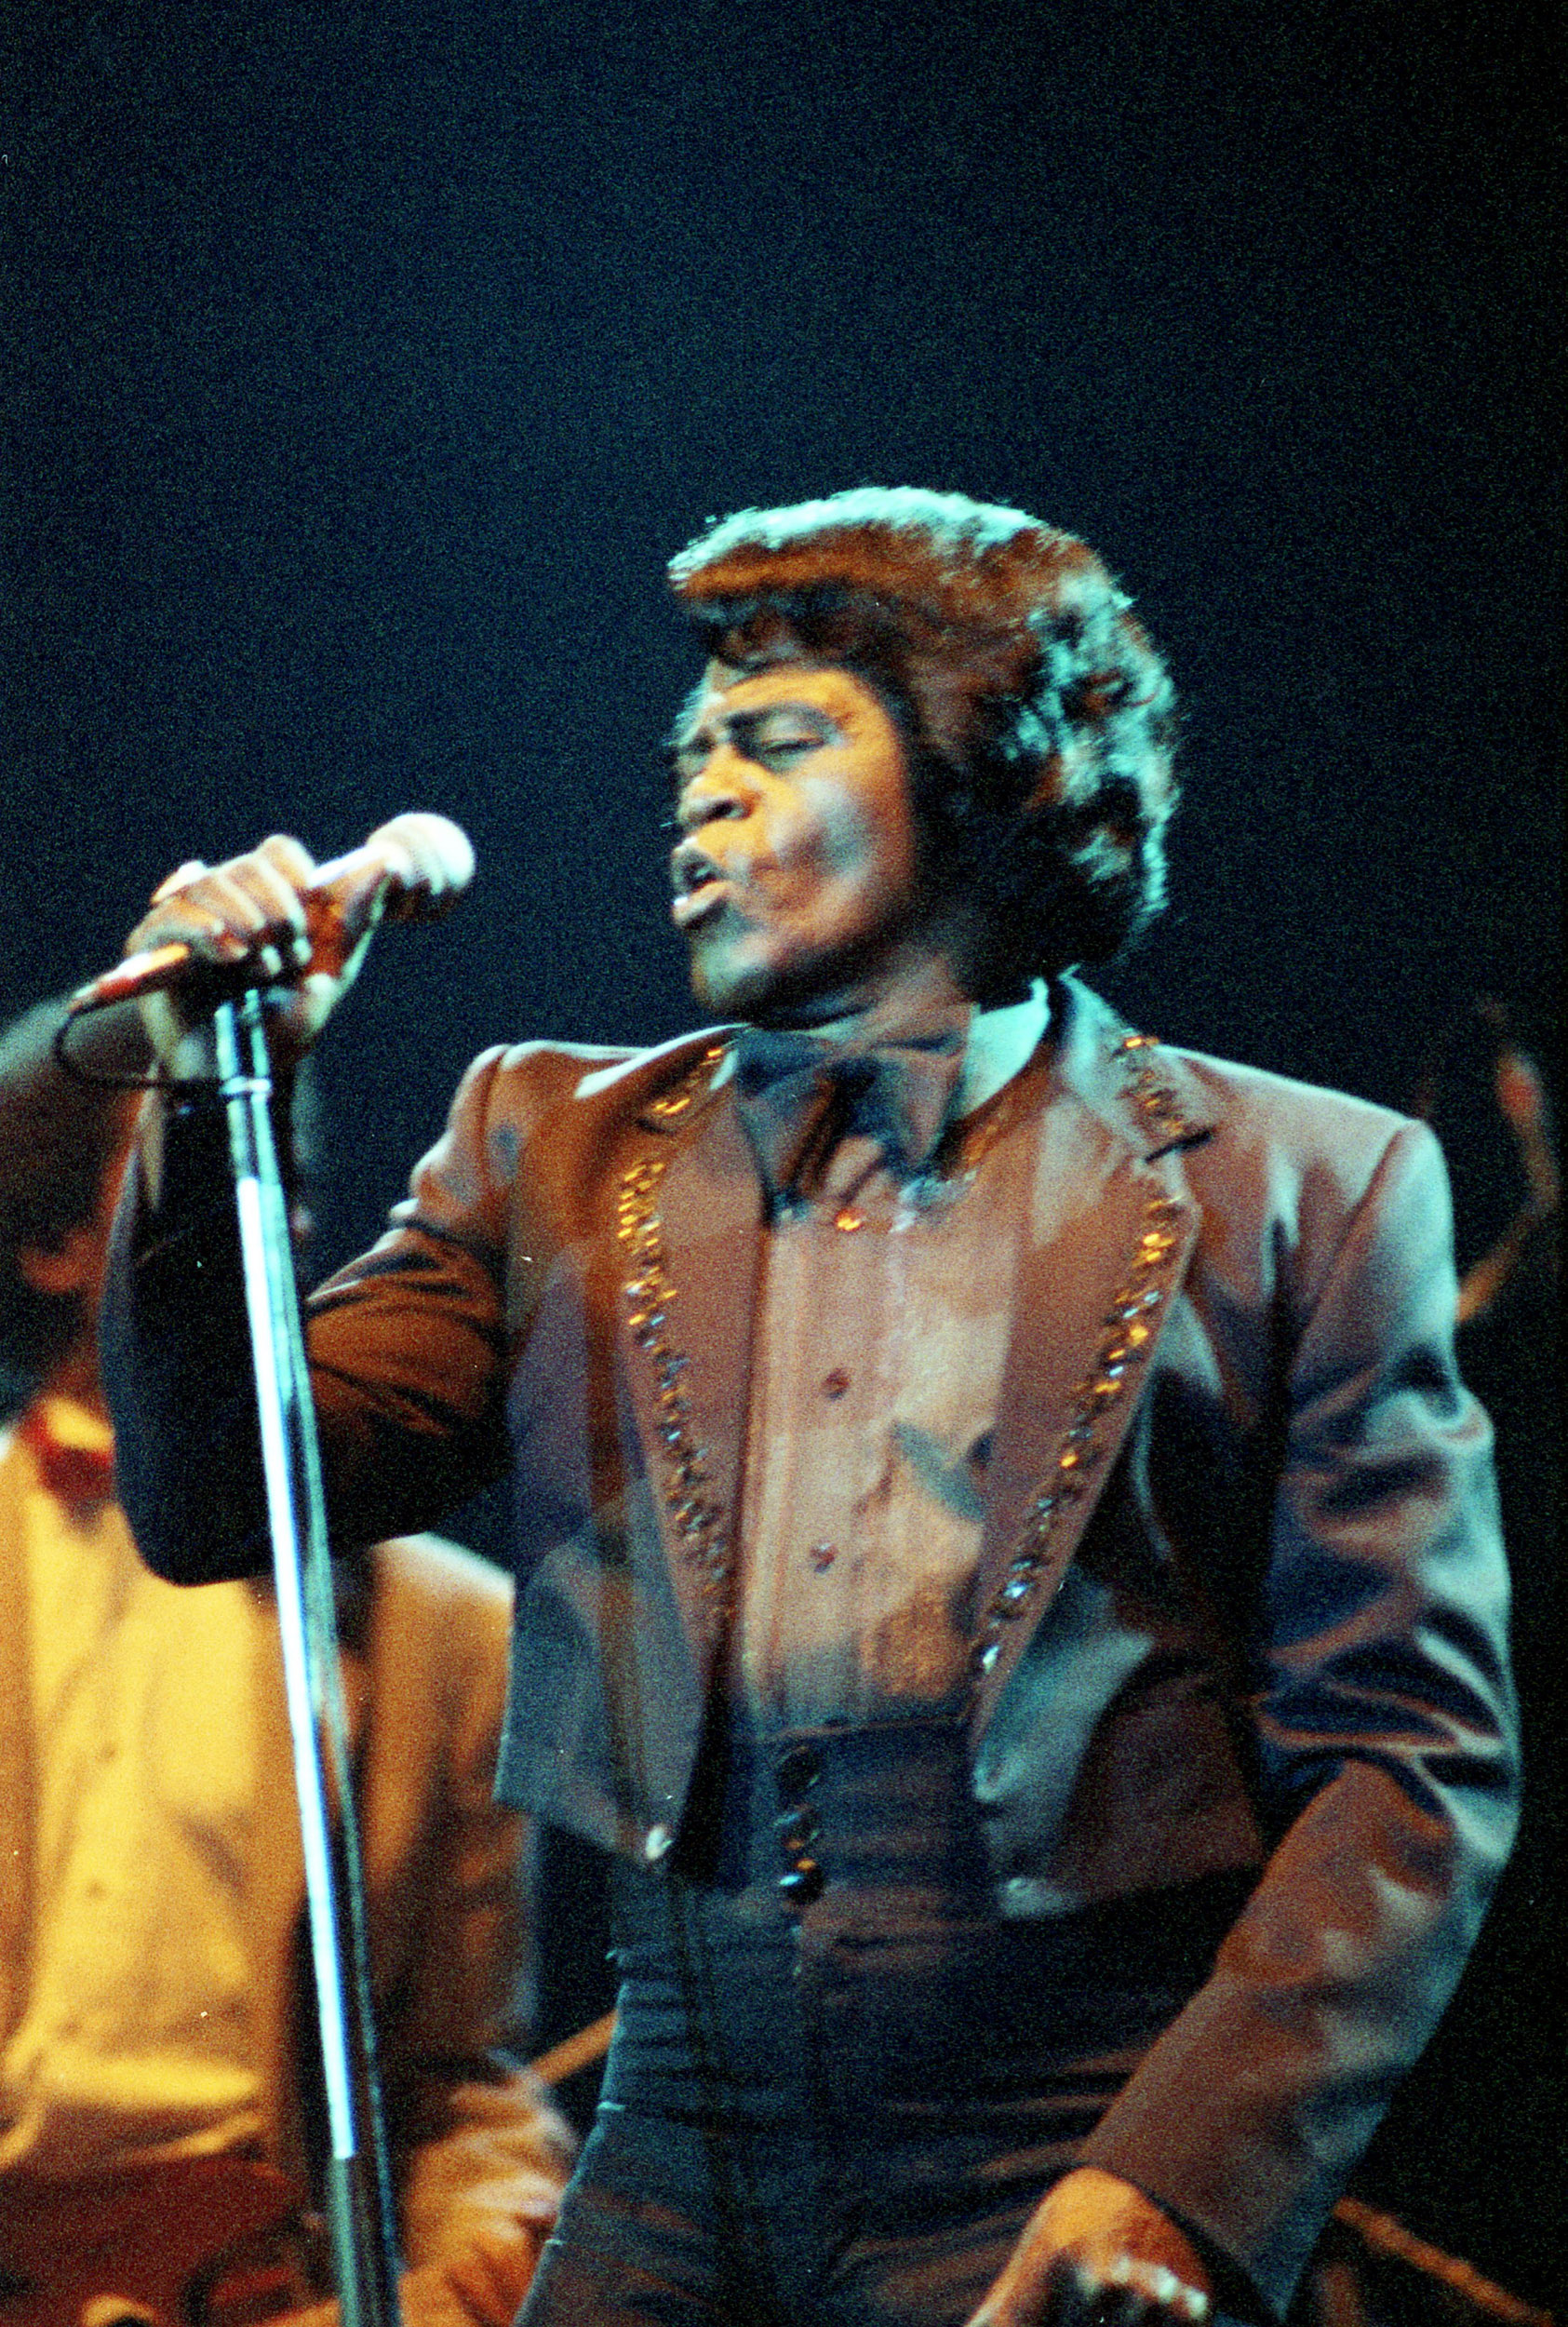 pop muziek popmuziek muzikanten artiest James Brown Ahoy Rotterdam Nederland 20-04-1986 Godfather of Soul Amerikaanse zanger funk rhythm blues